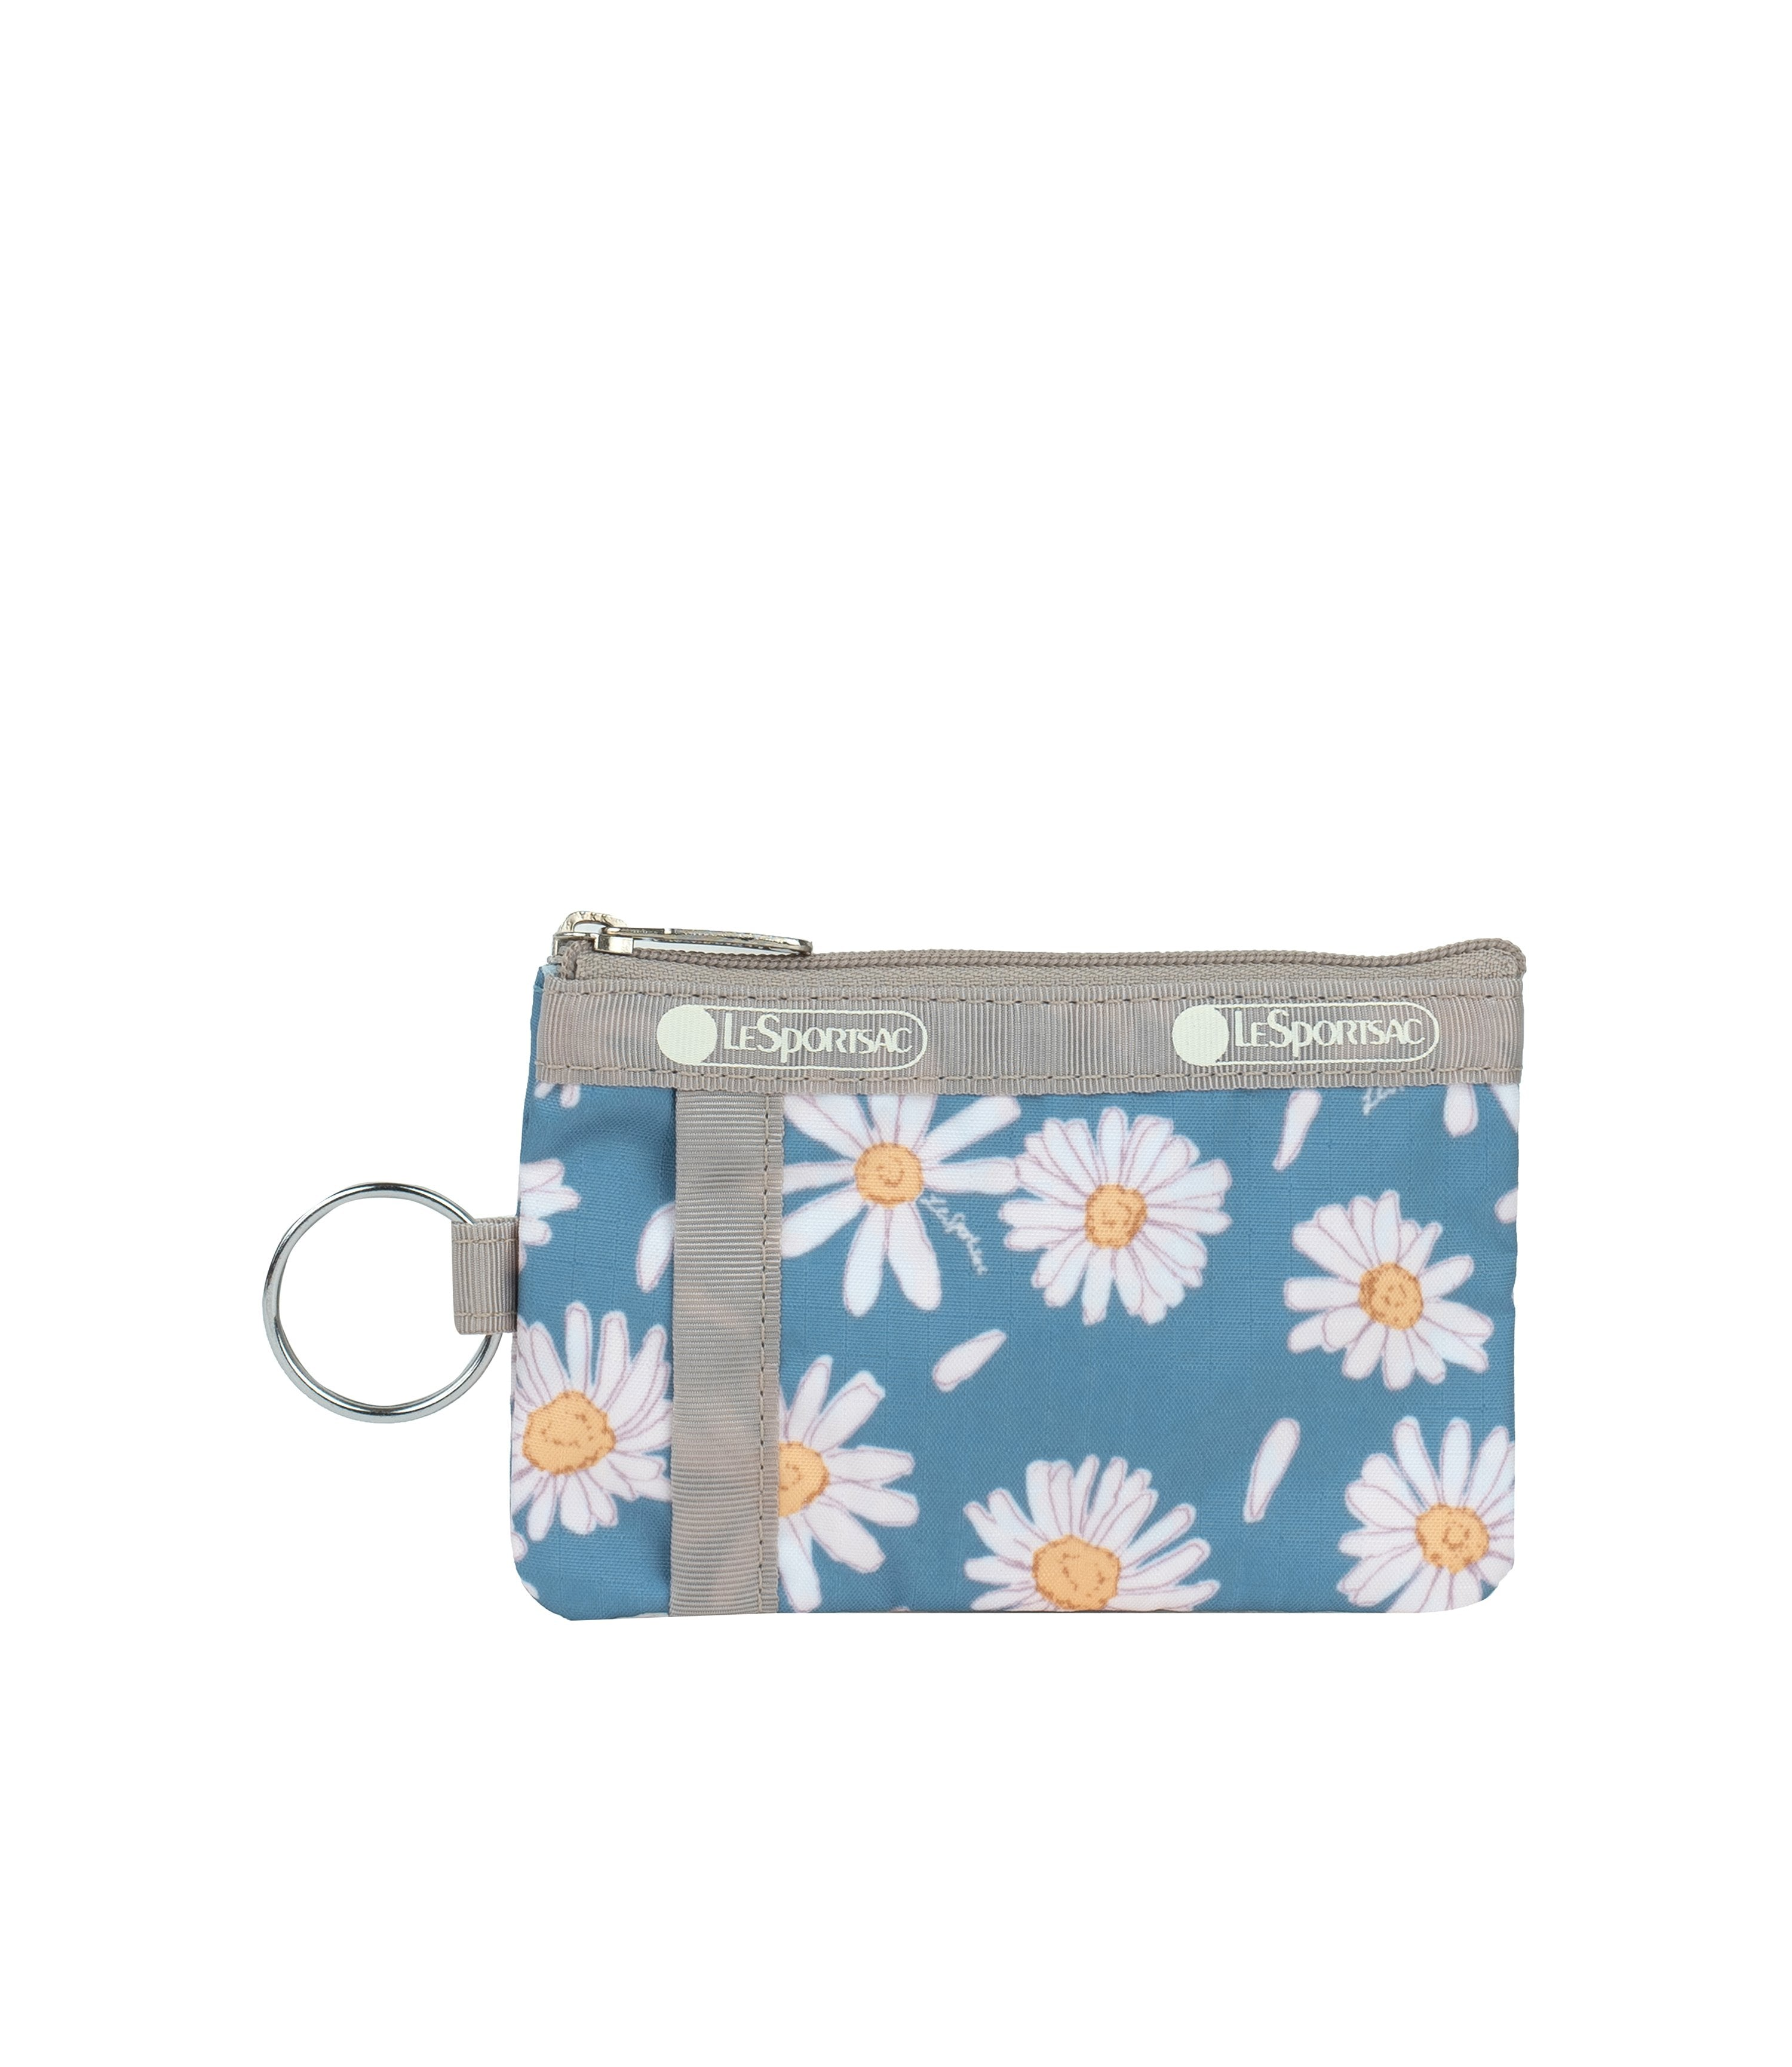 LeSportsac - Accessories - ID Card Case - Daisy Petals print